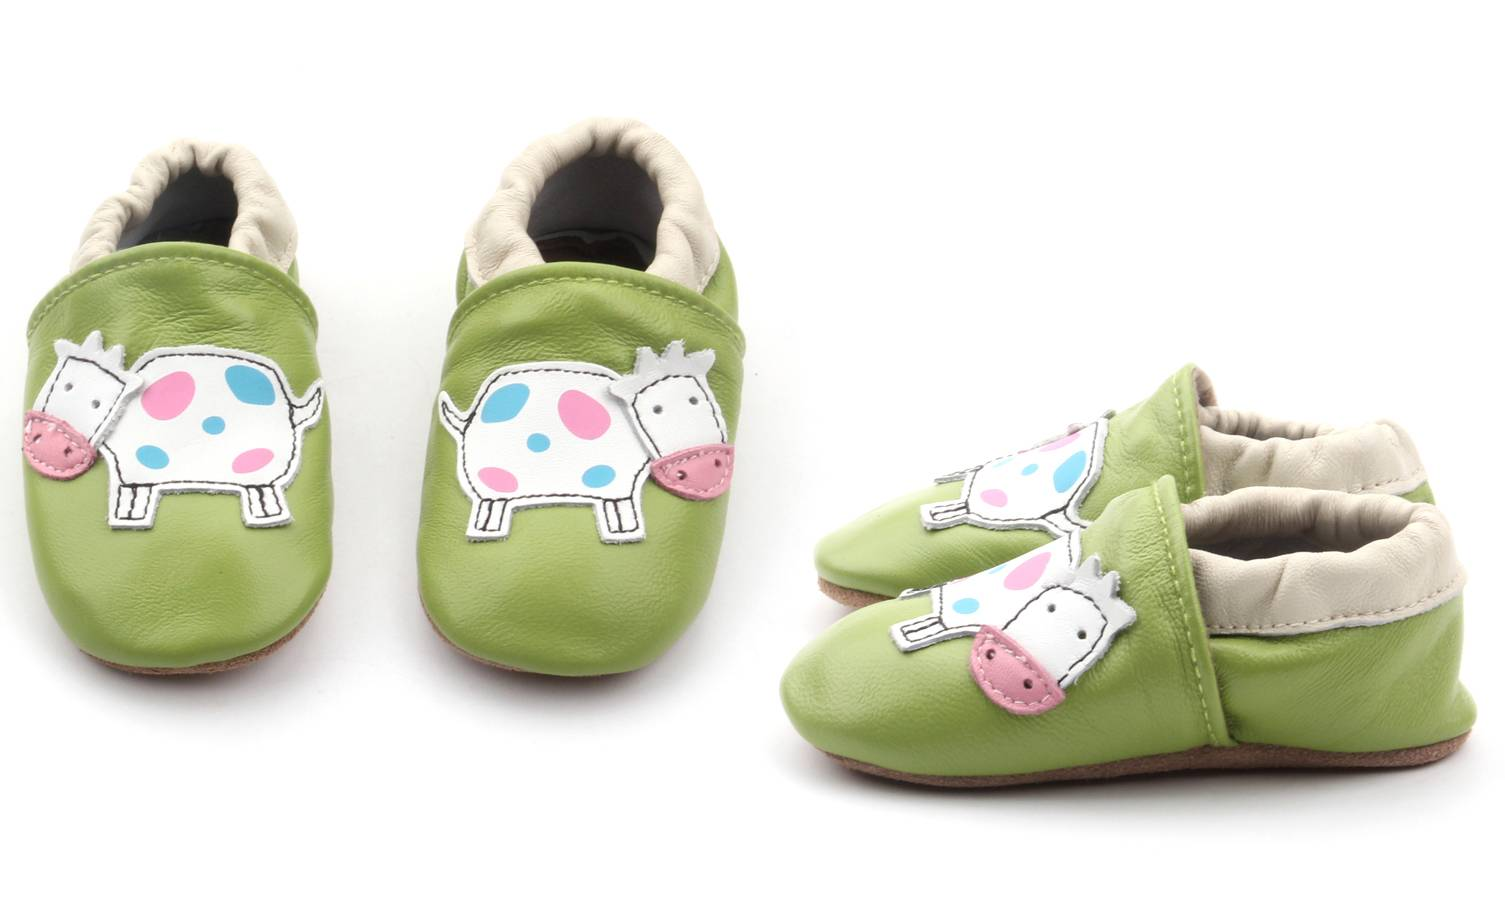 Chaussons cuir Shoop's - Vache 0-6 mois